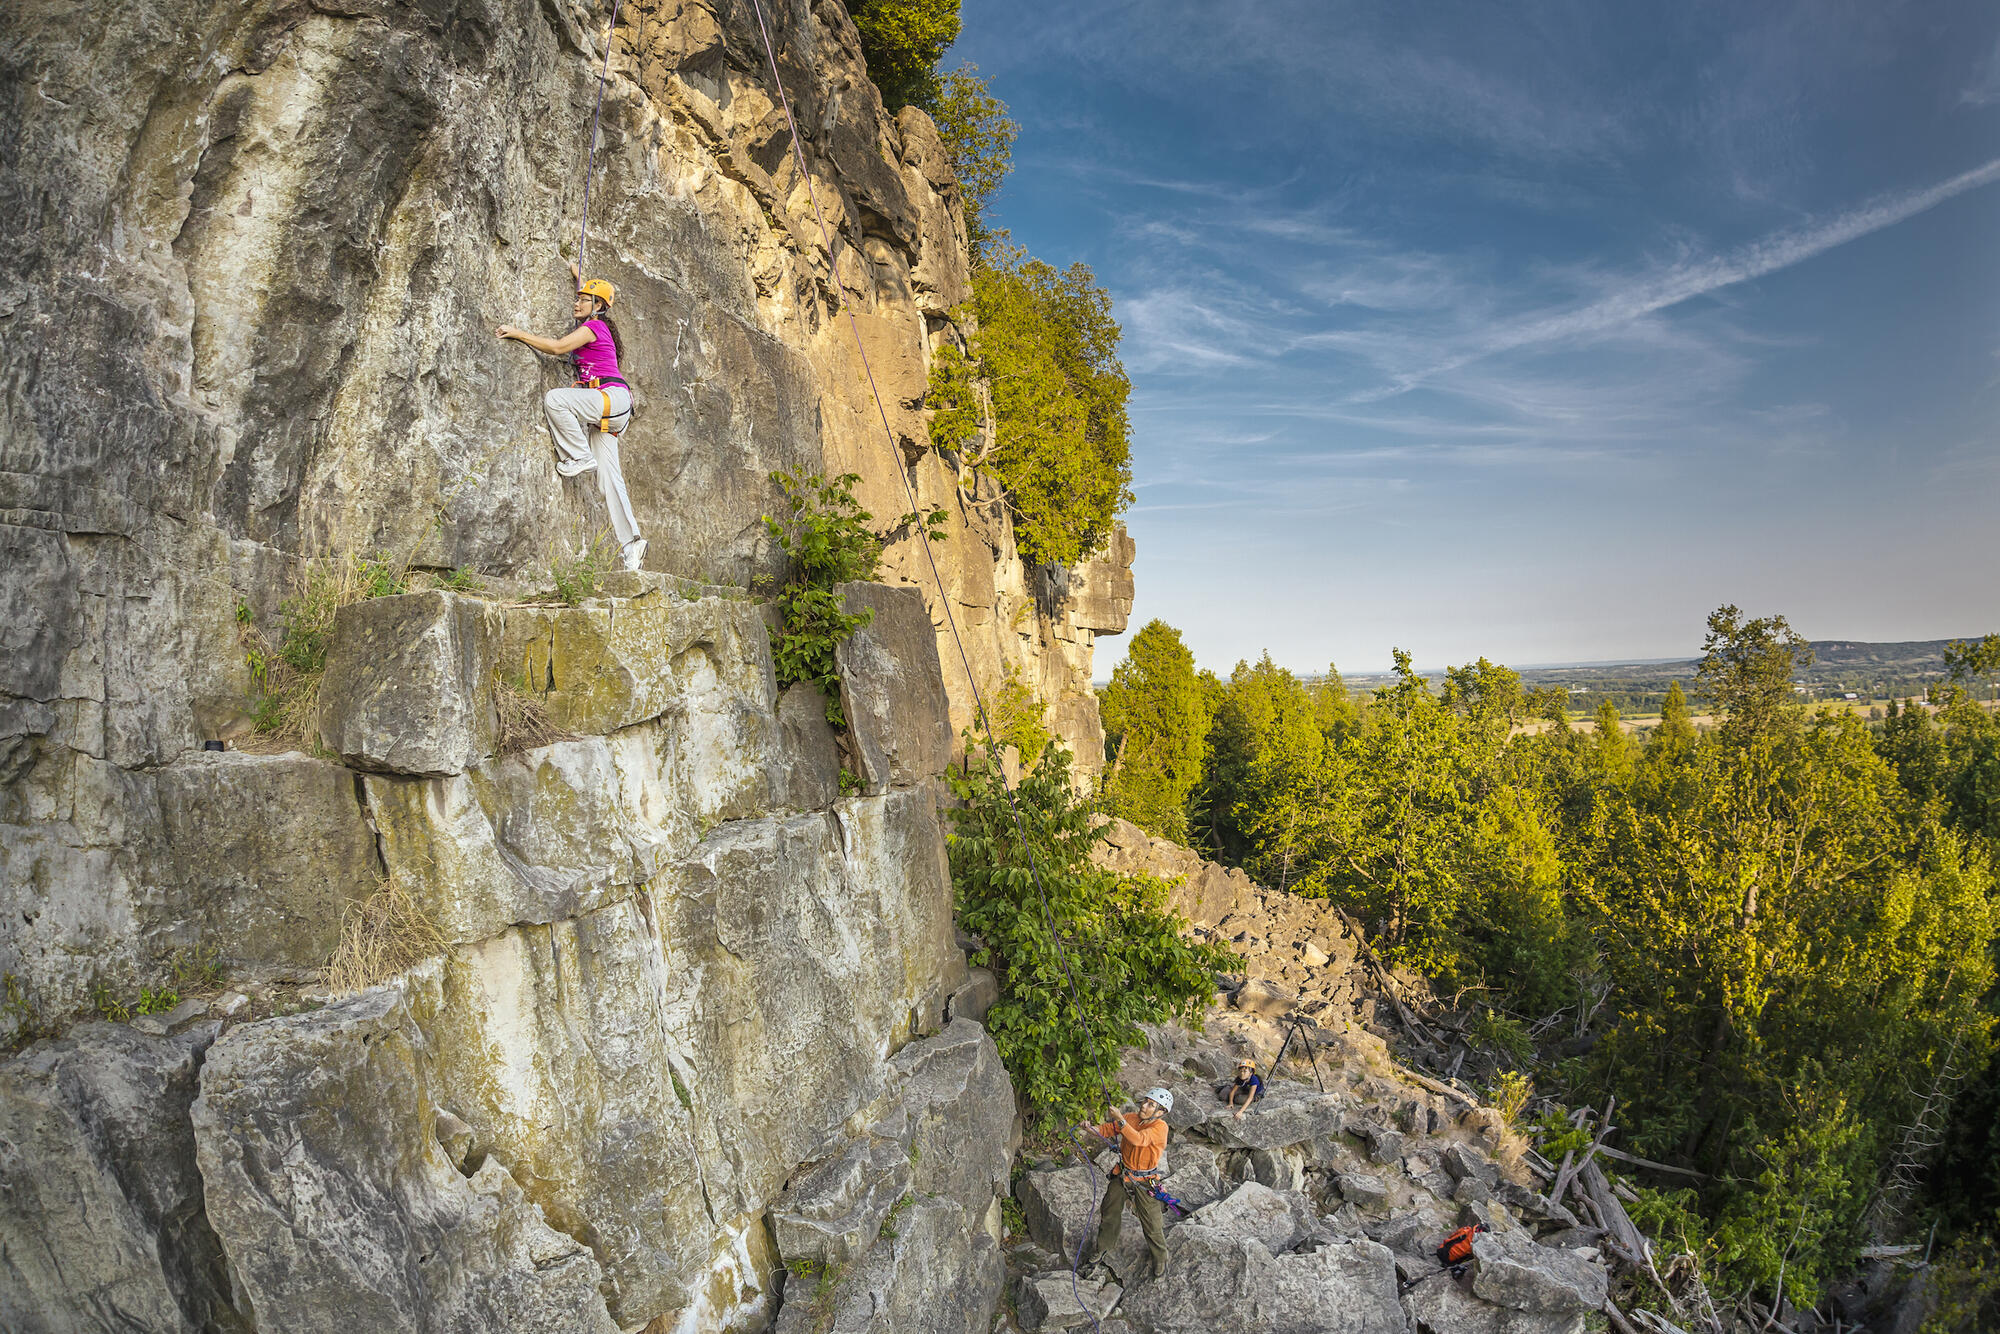 Getting The Deal Of A Lifetime  Northern Ontario Travel